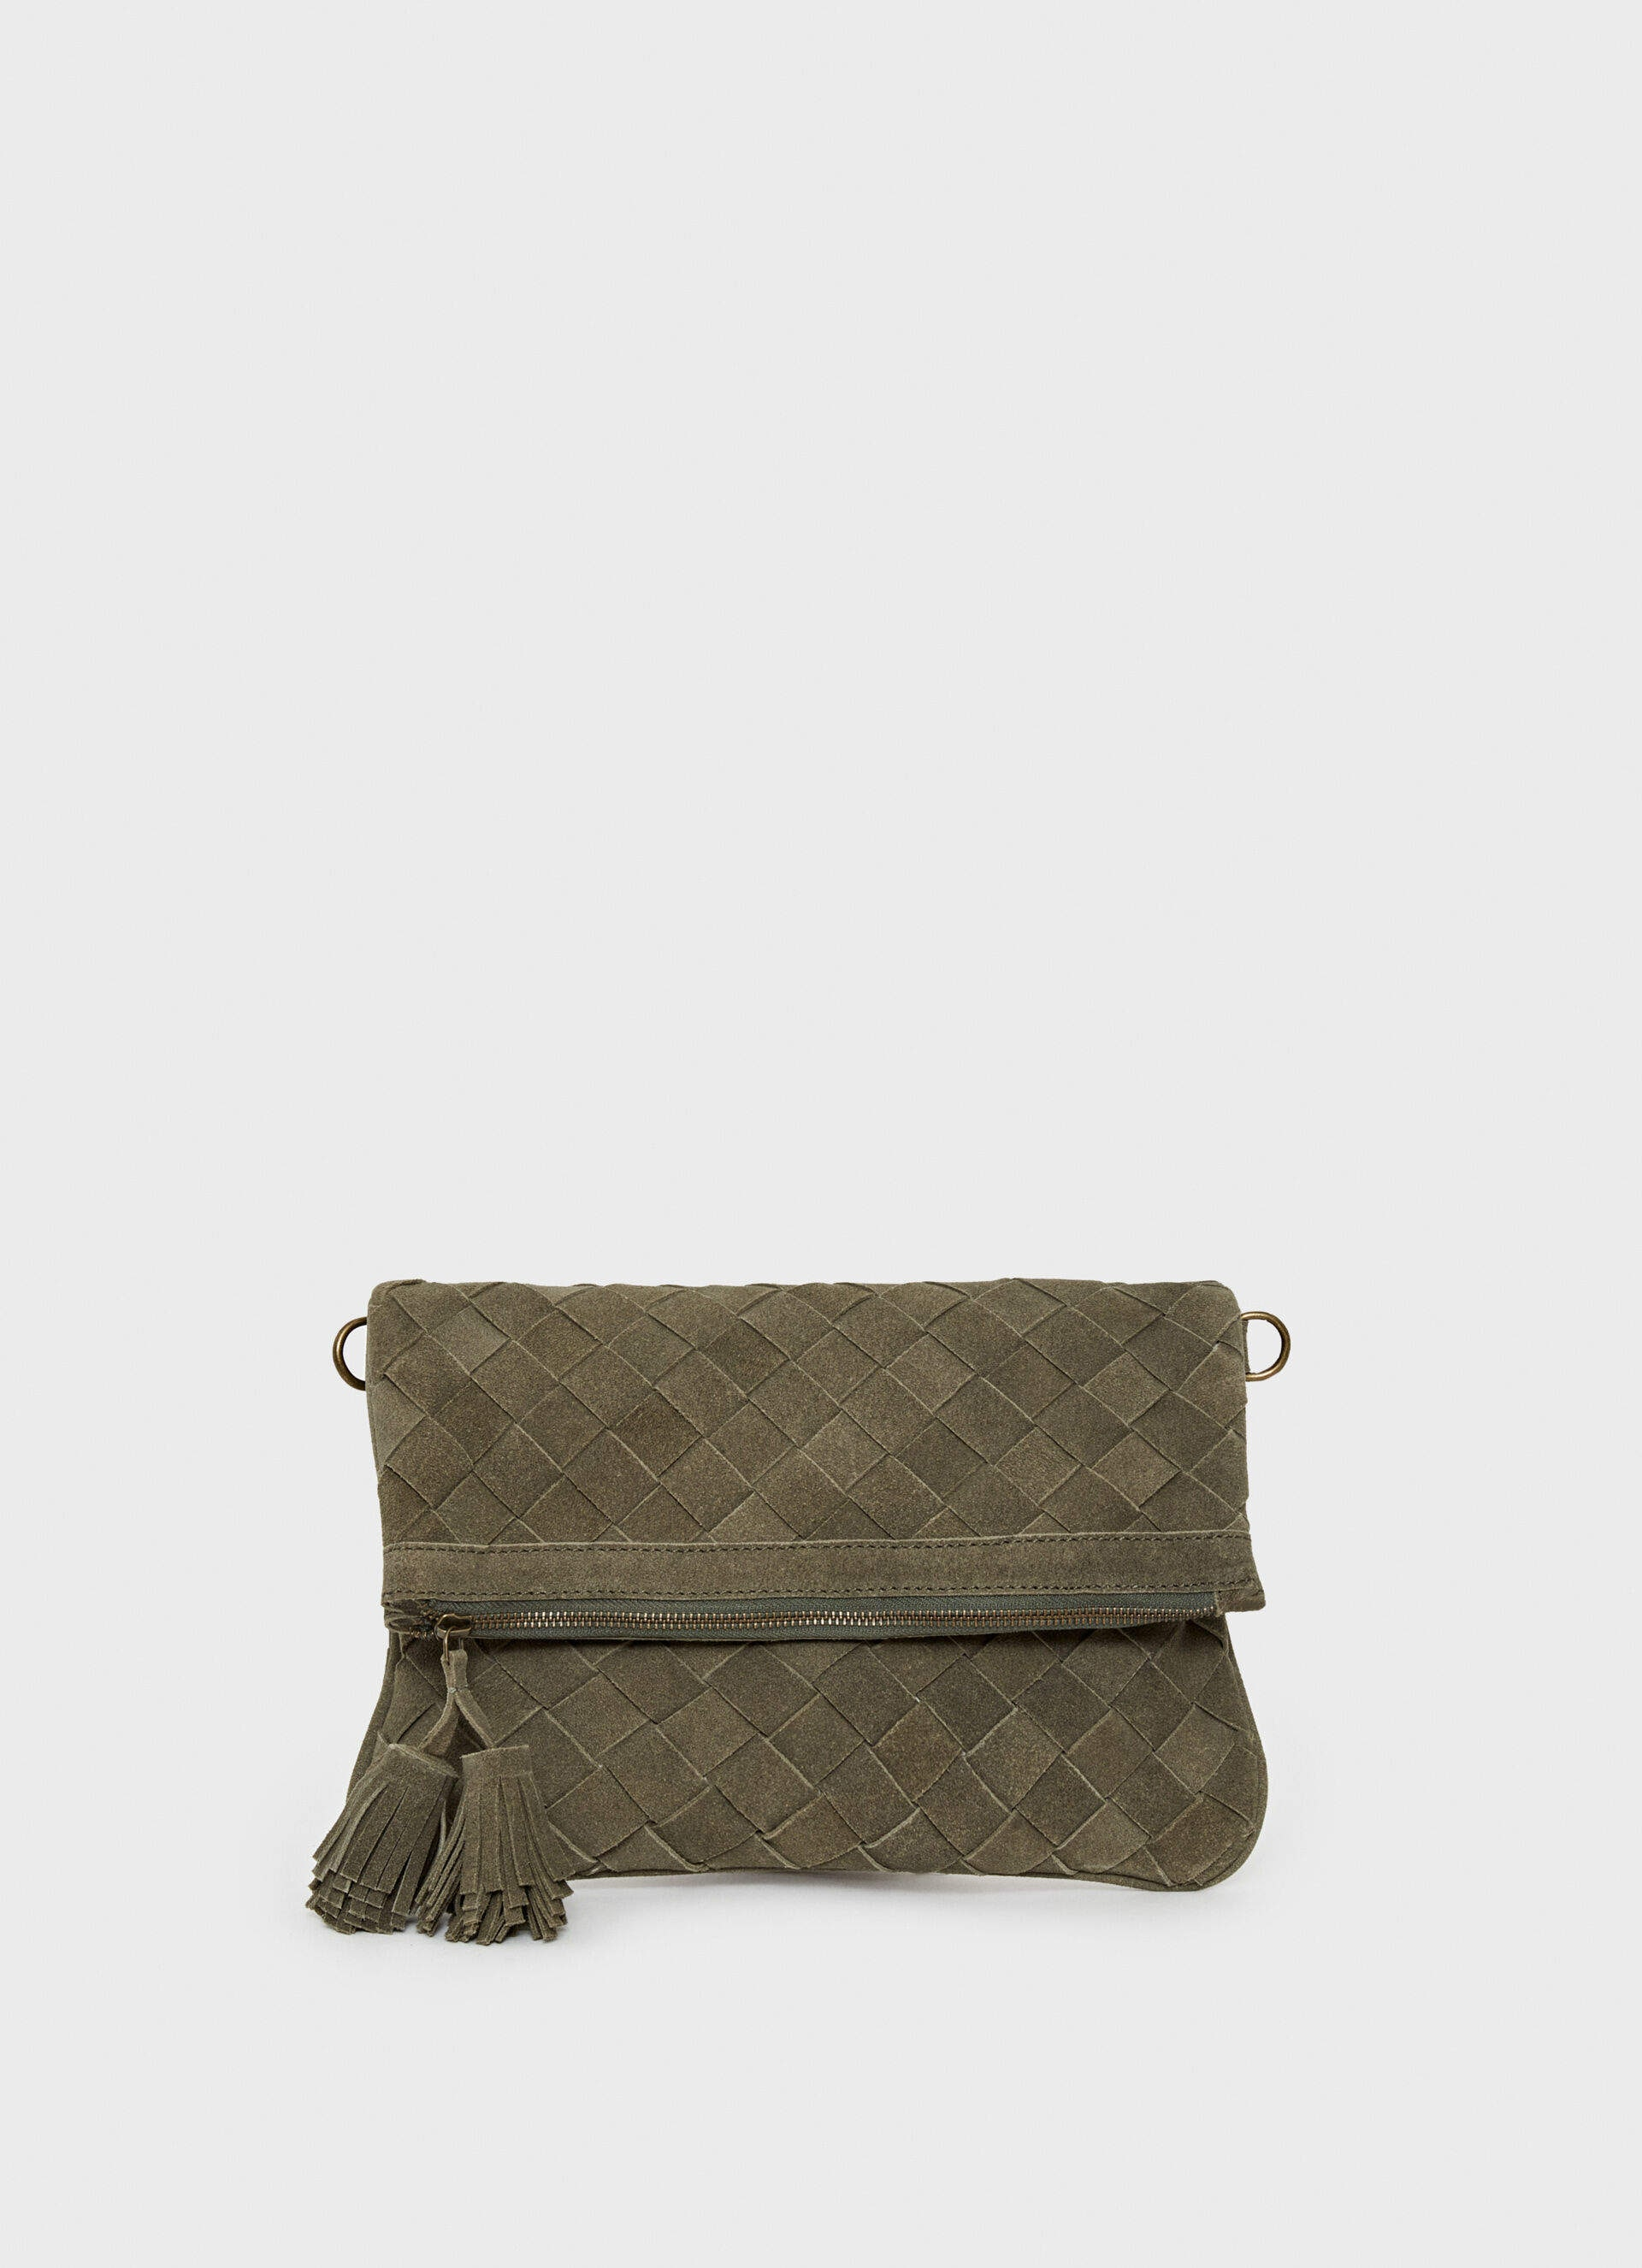 Buy Pepe Jeans Elia Suede Shoulder Bag Pl031037 Seagrass Features Price Reviews Online In India Justdial